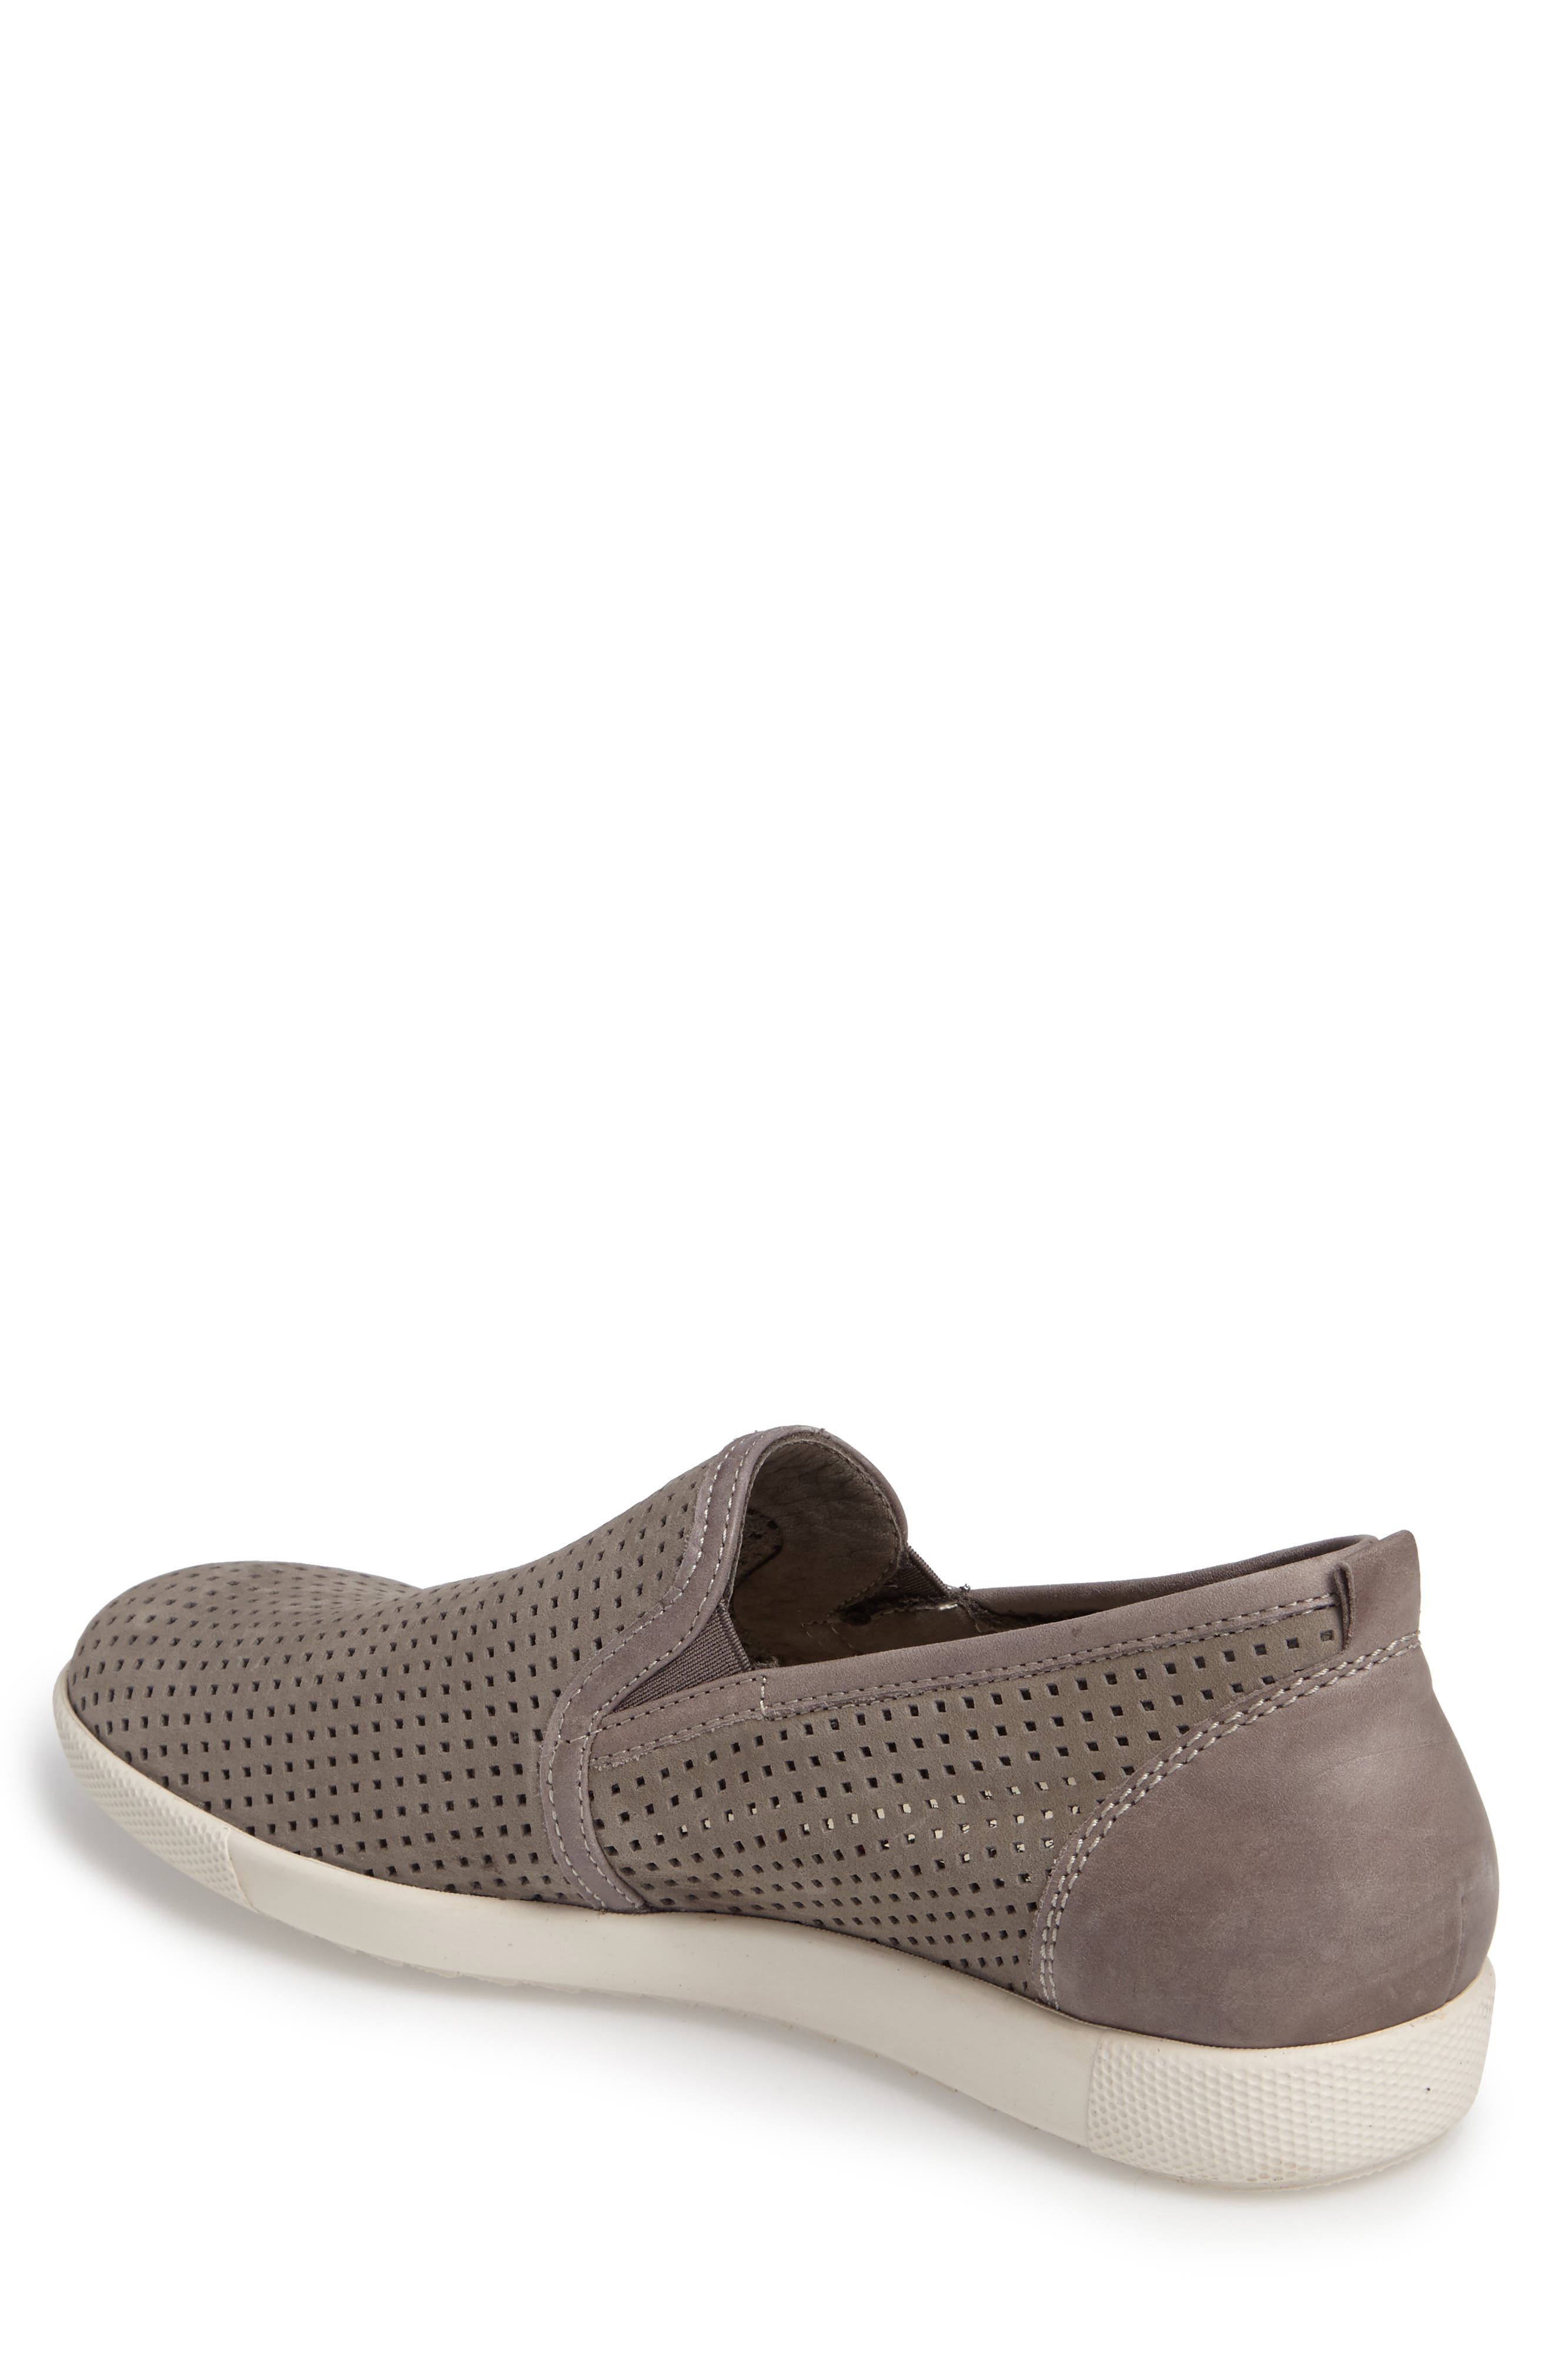 MEPHISTO, 'Ulrich' Perforated Leather Slip-On, Alternate thumbnail 2, color, LIGHT GREY SPORTBUCK